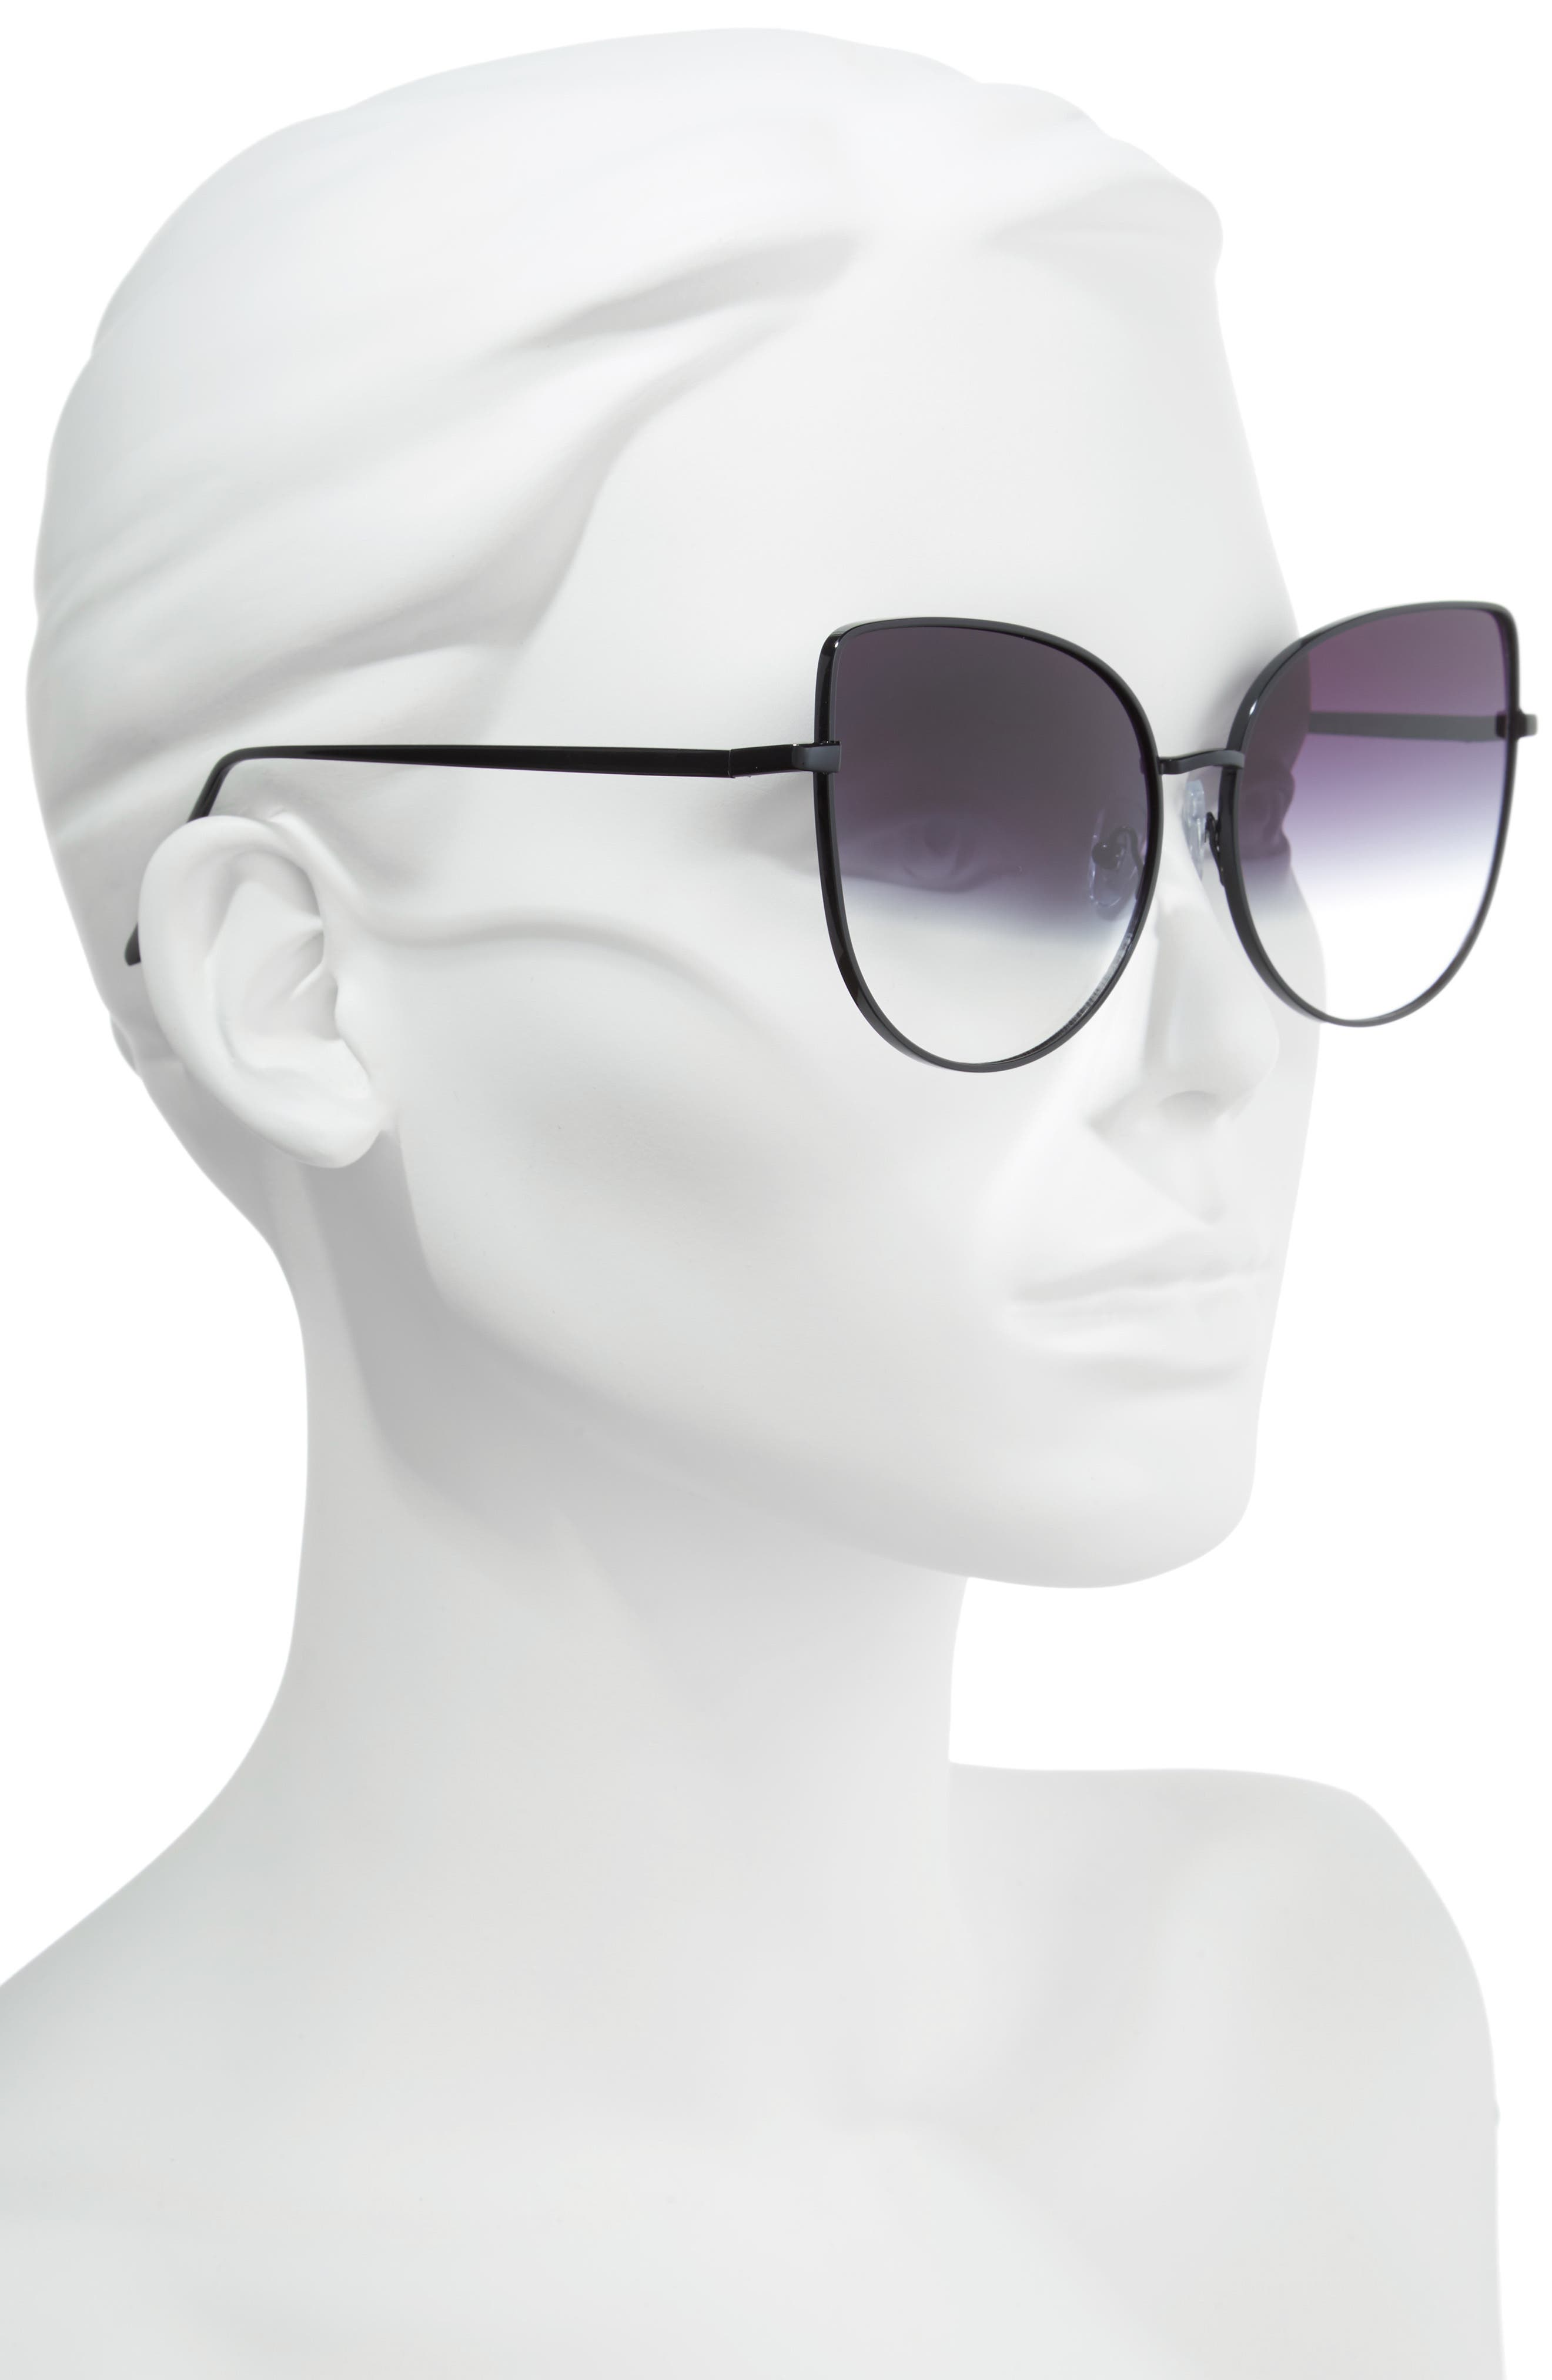 60mm Metal Cat Eye Sunglasses,                             Alternate thumbnail 2, color,                             Black/ Fade To Clear